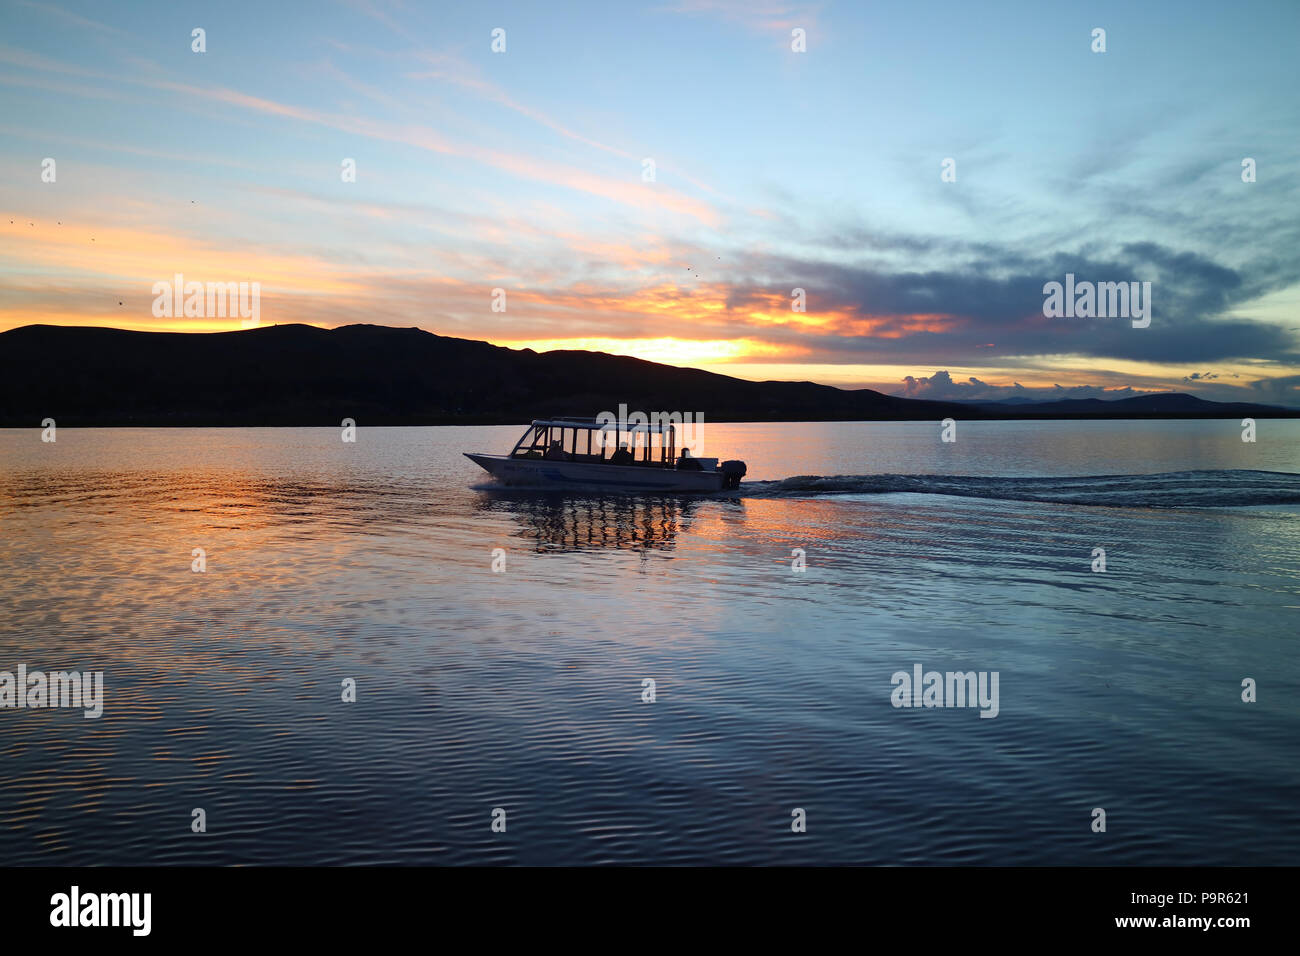 Silhouette of a Cruising Boat on Lake Titicaca at Sunset, Puno, Peru, South America - Stock Image